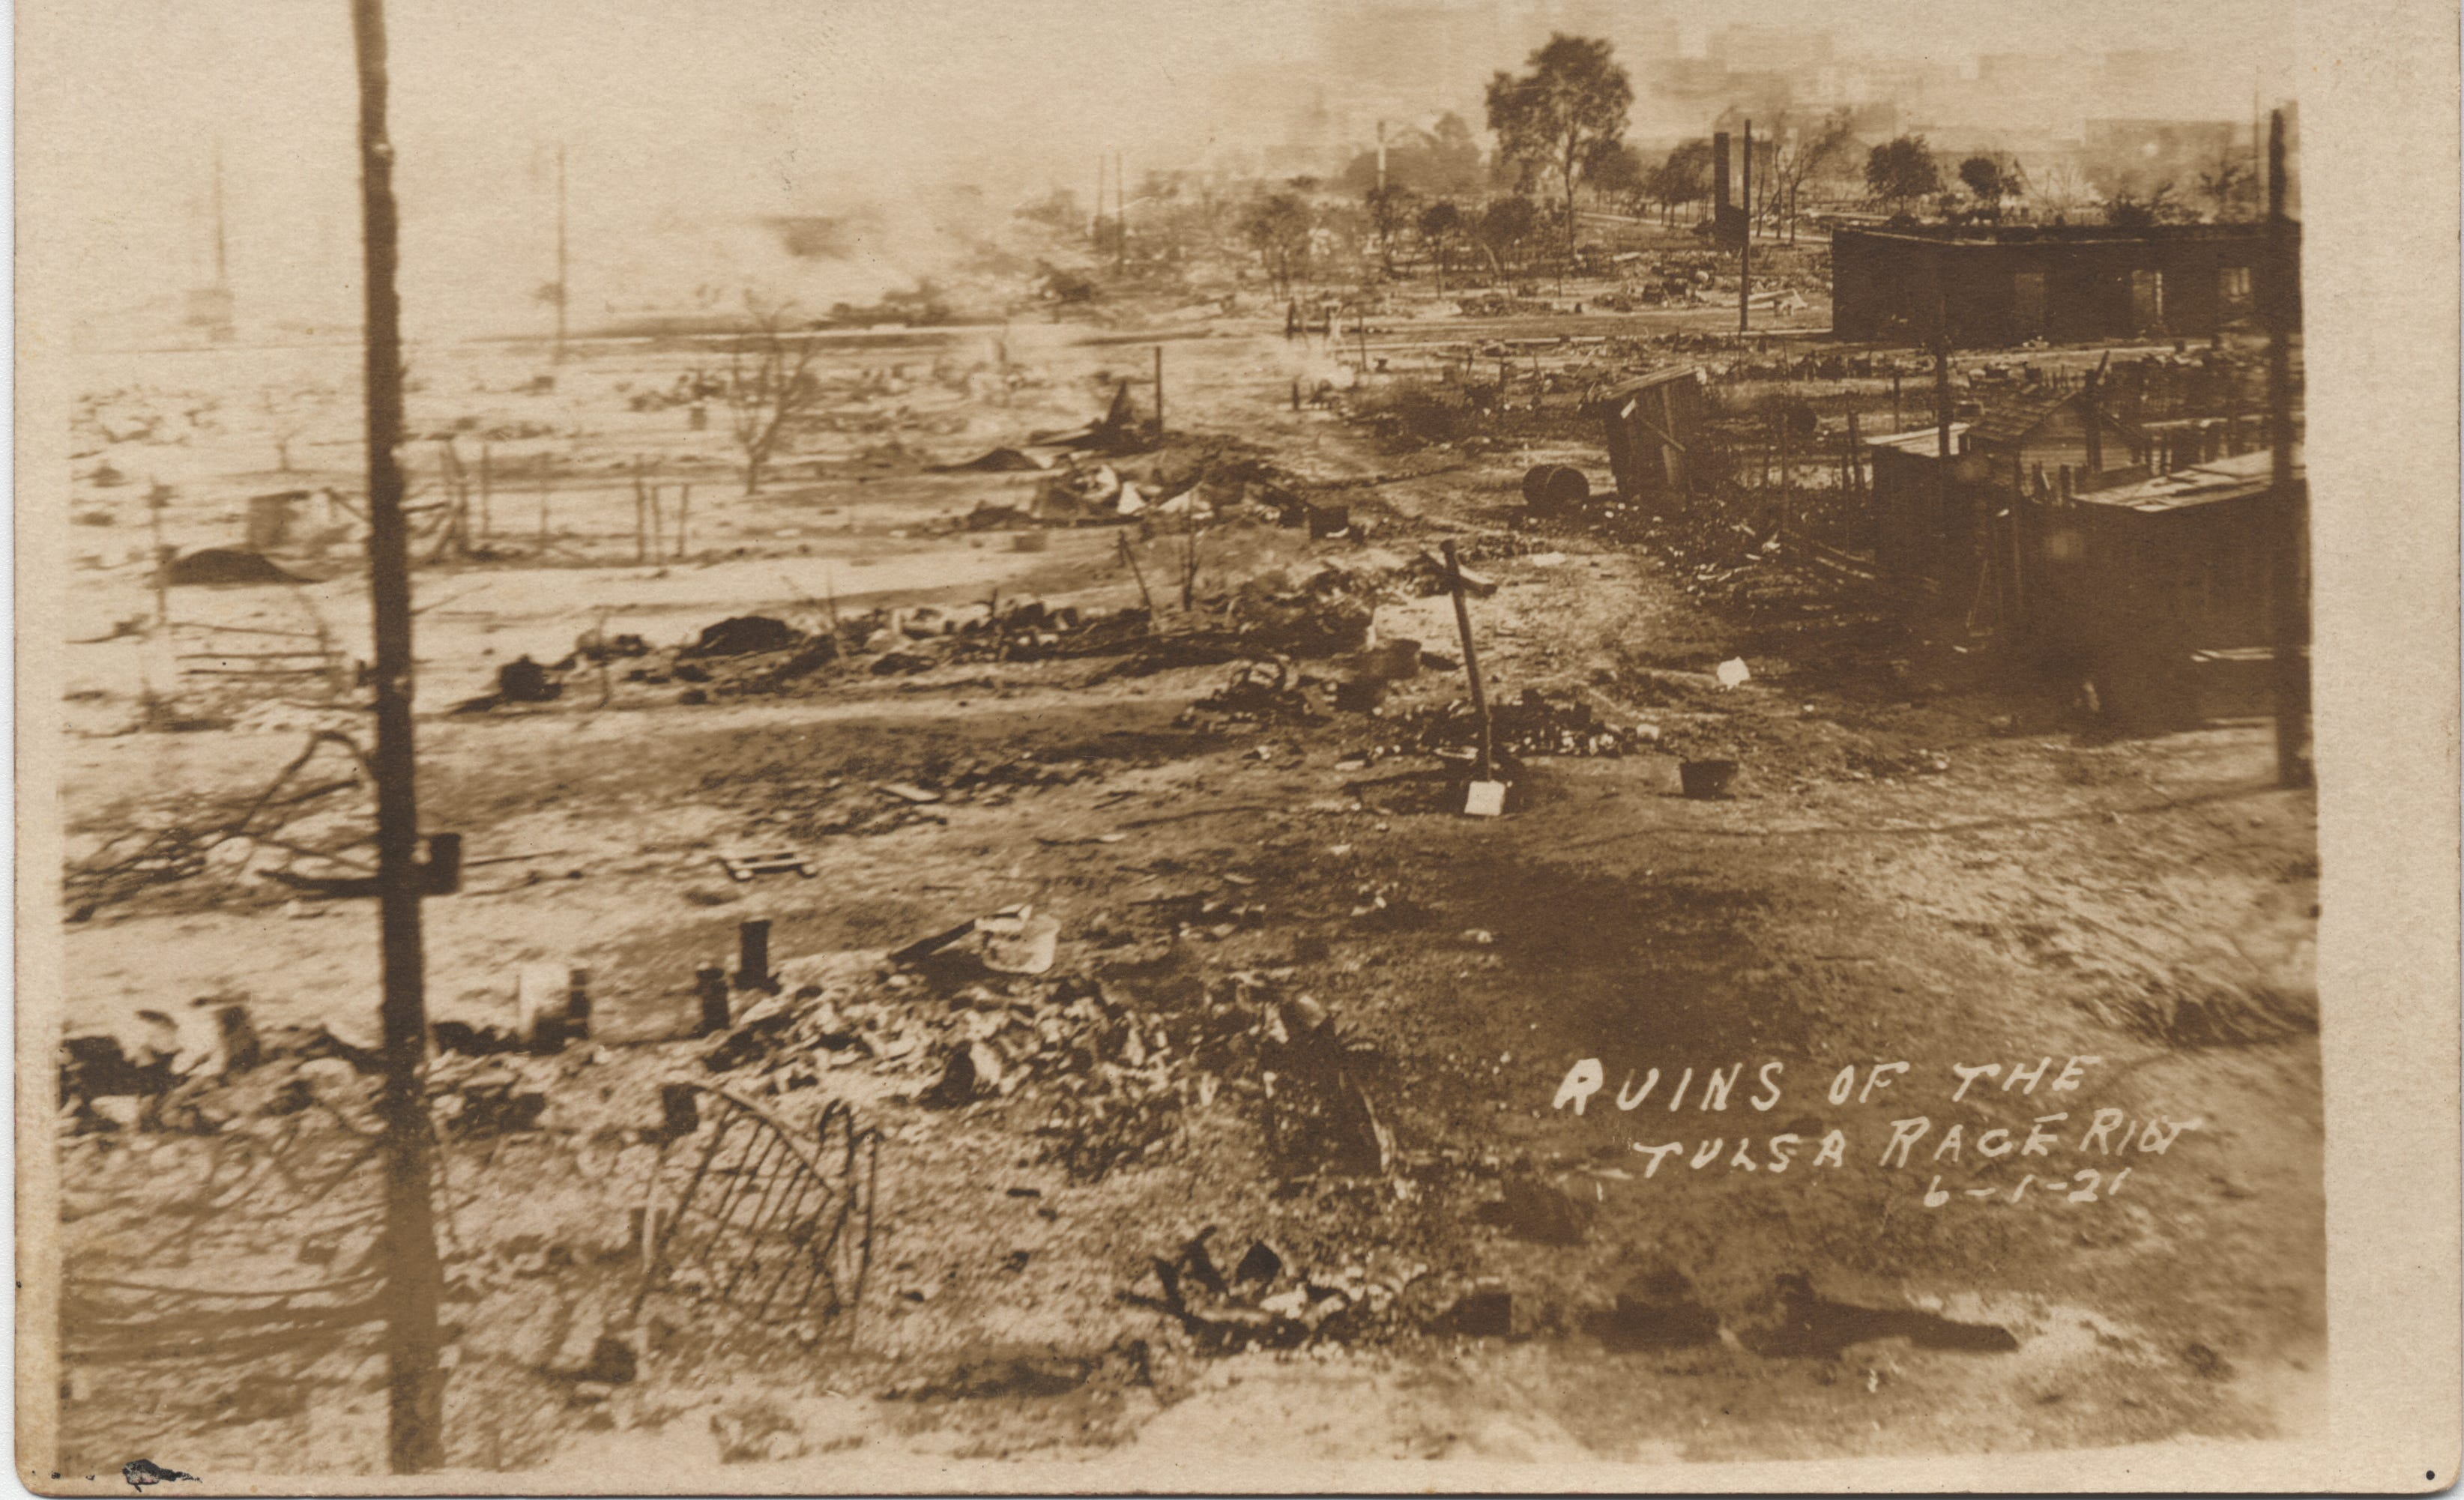 The ruins of Dunbar Elementary School and the Masonic Hall after the Tulsa race massacre.